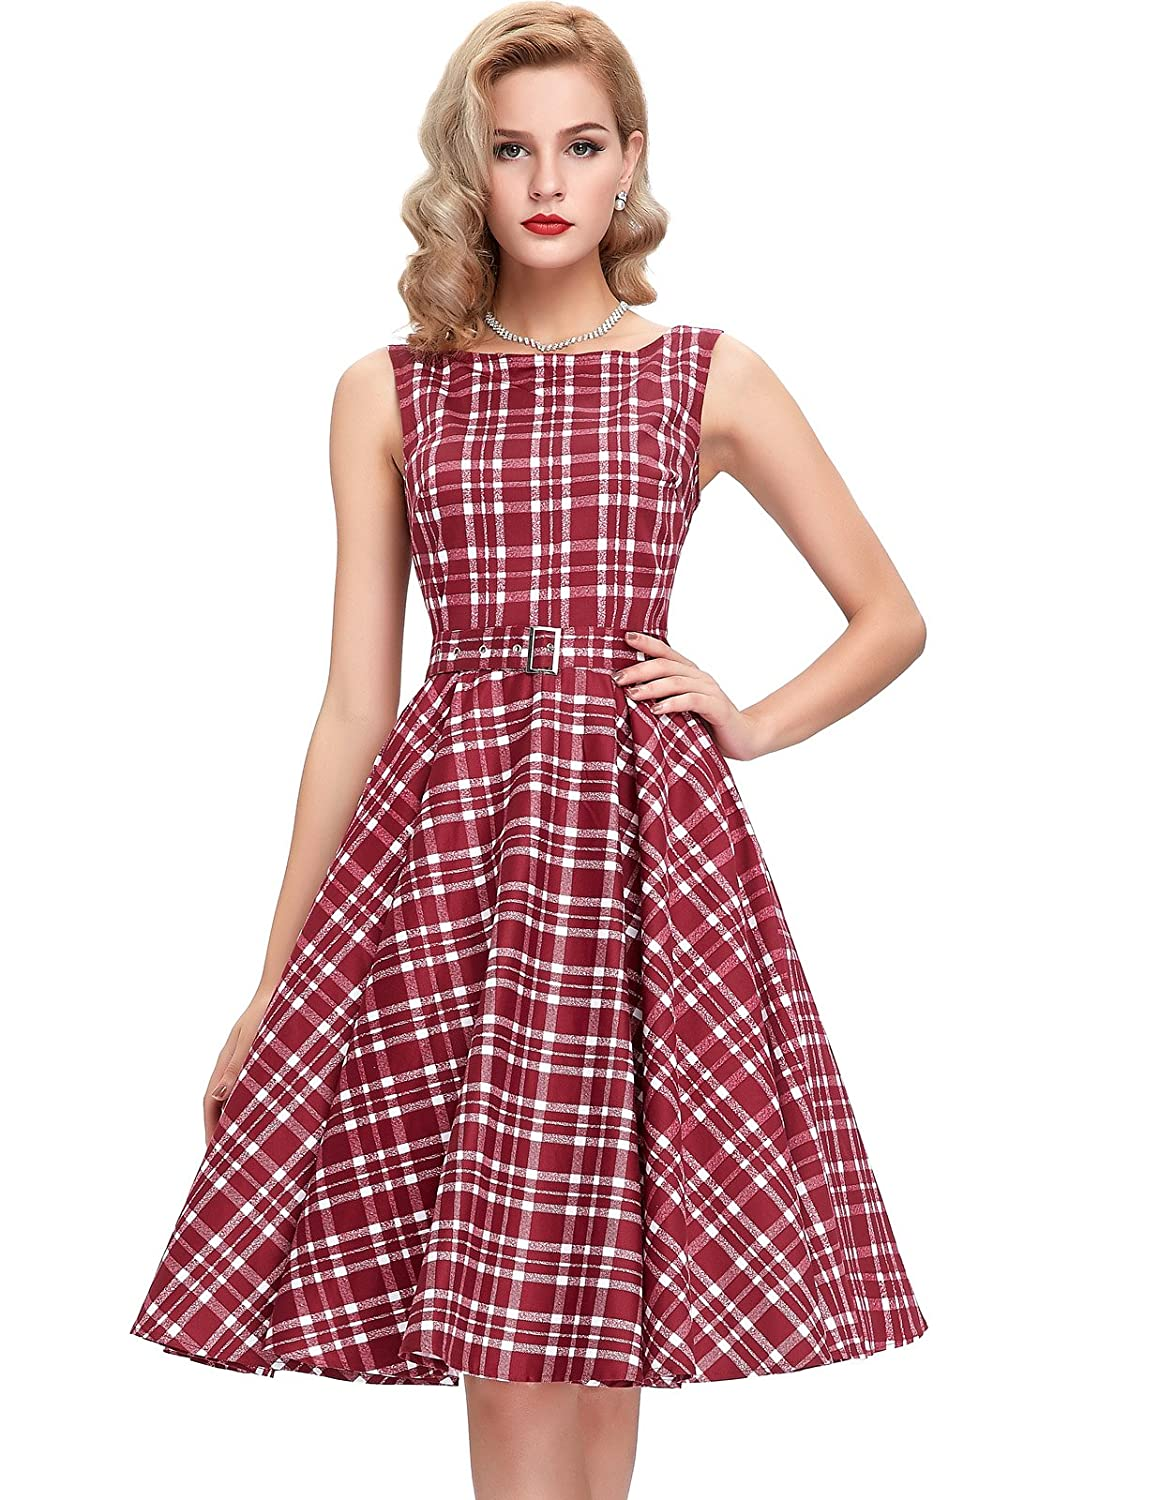 1960s Style Dresses- Retro Inspired Fashion 50s Vintage Swing Dress BP0002 (Multi-Colored) $26.37 AT vintagedancer.com